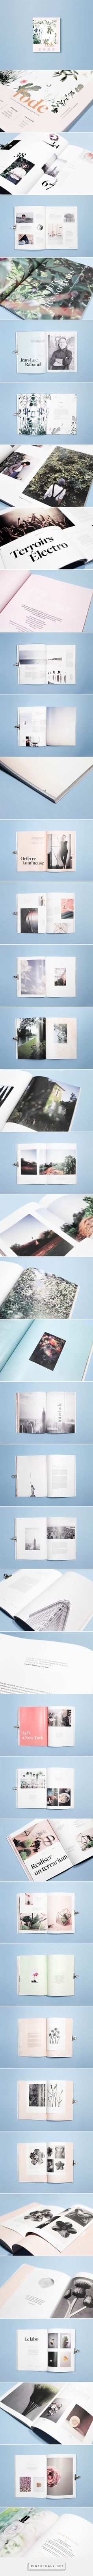 l'ode magazine - diptyque on Behance - created via http://pinthemall.net